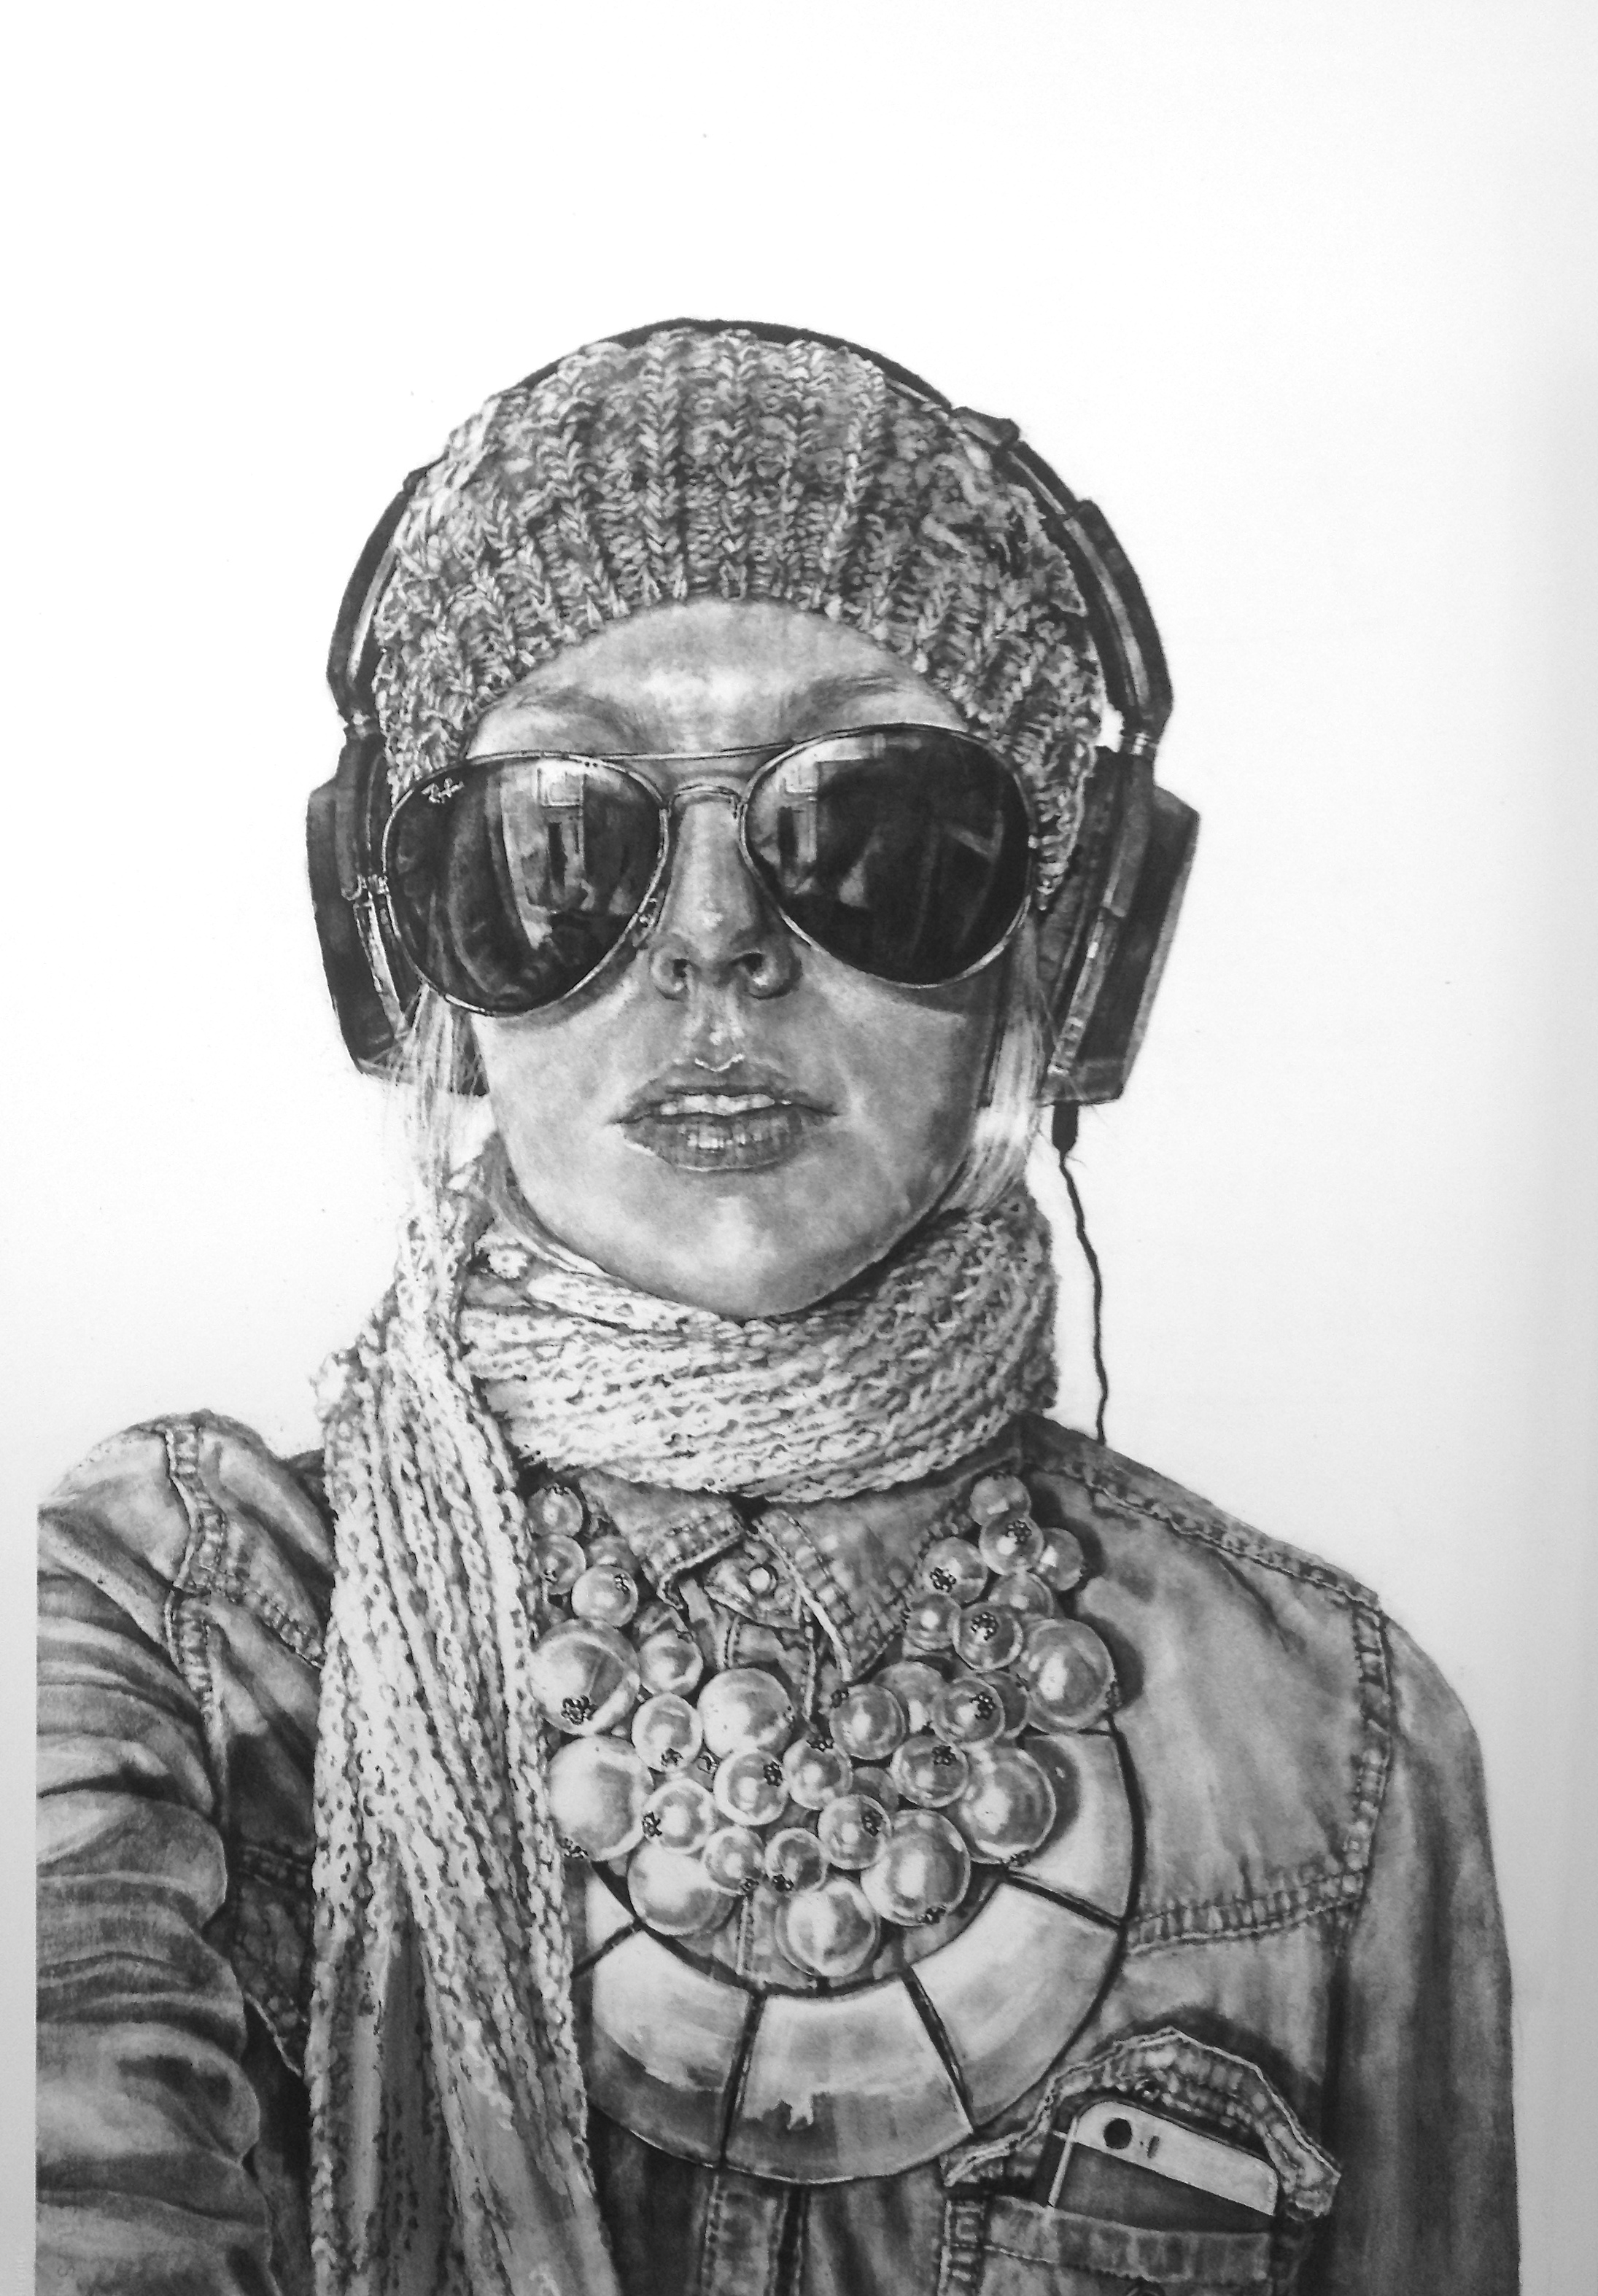 entry-18-amy_dynan_self_in_excess_charcoal_on_paper_120cm_x_80cm.jpg